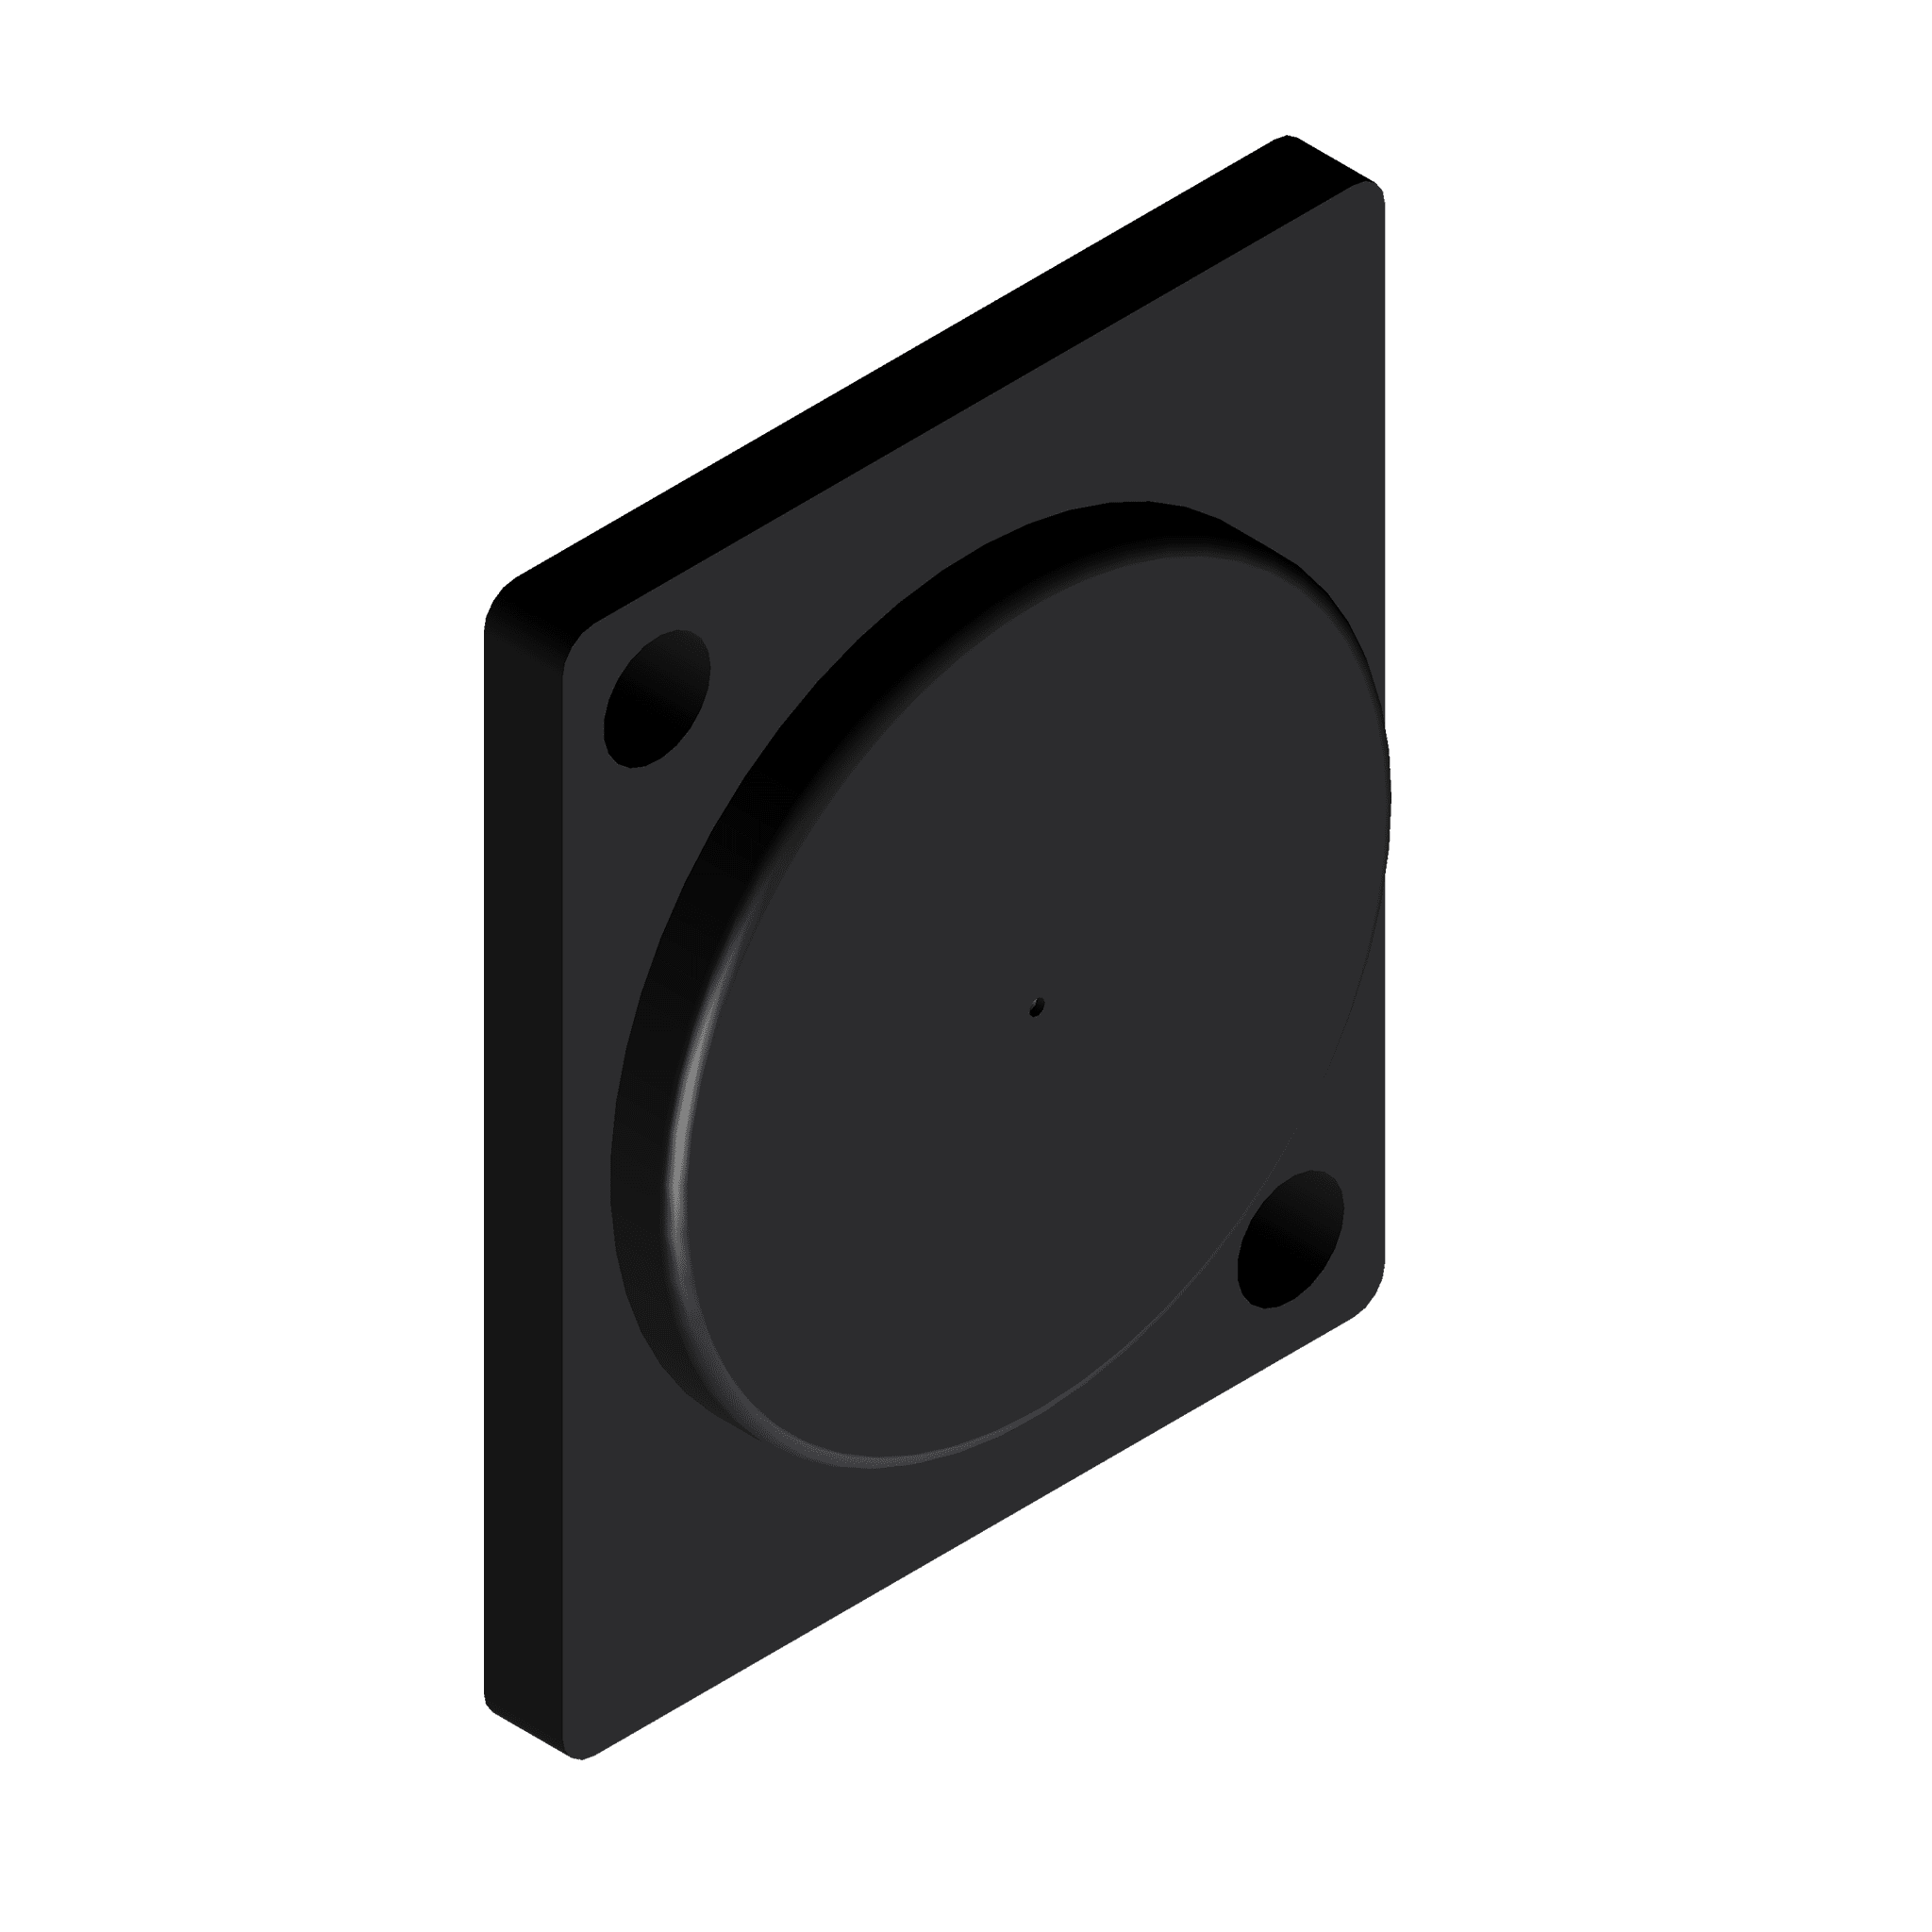 VCD10 - Blind plate - D-size